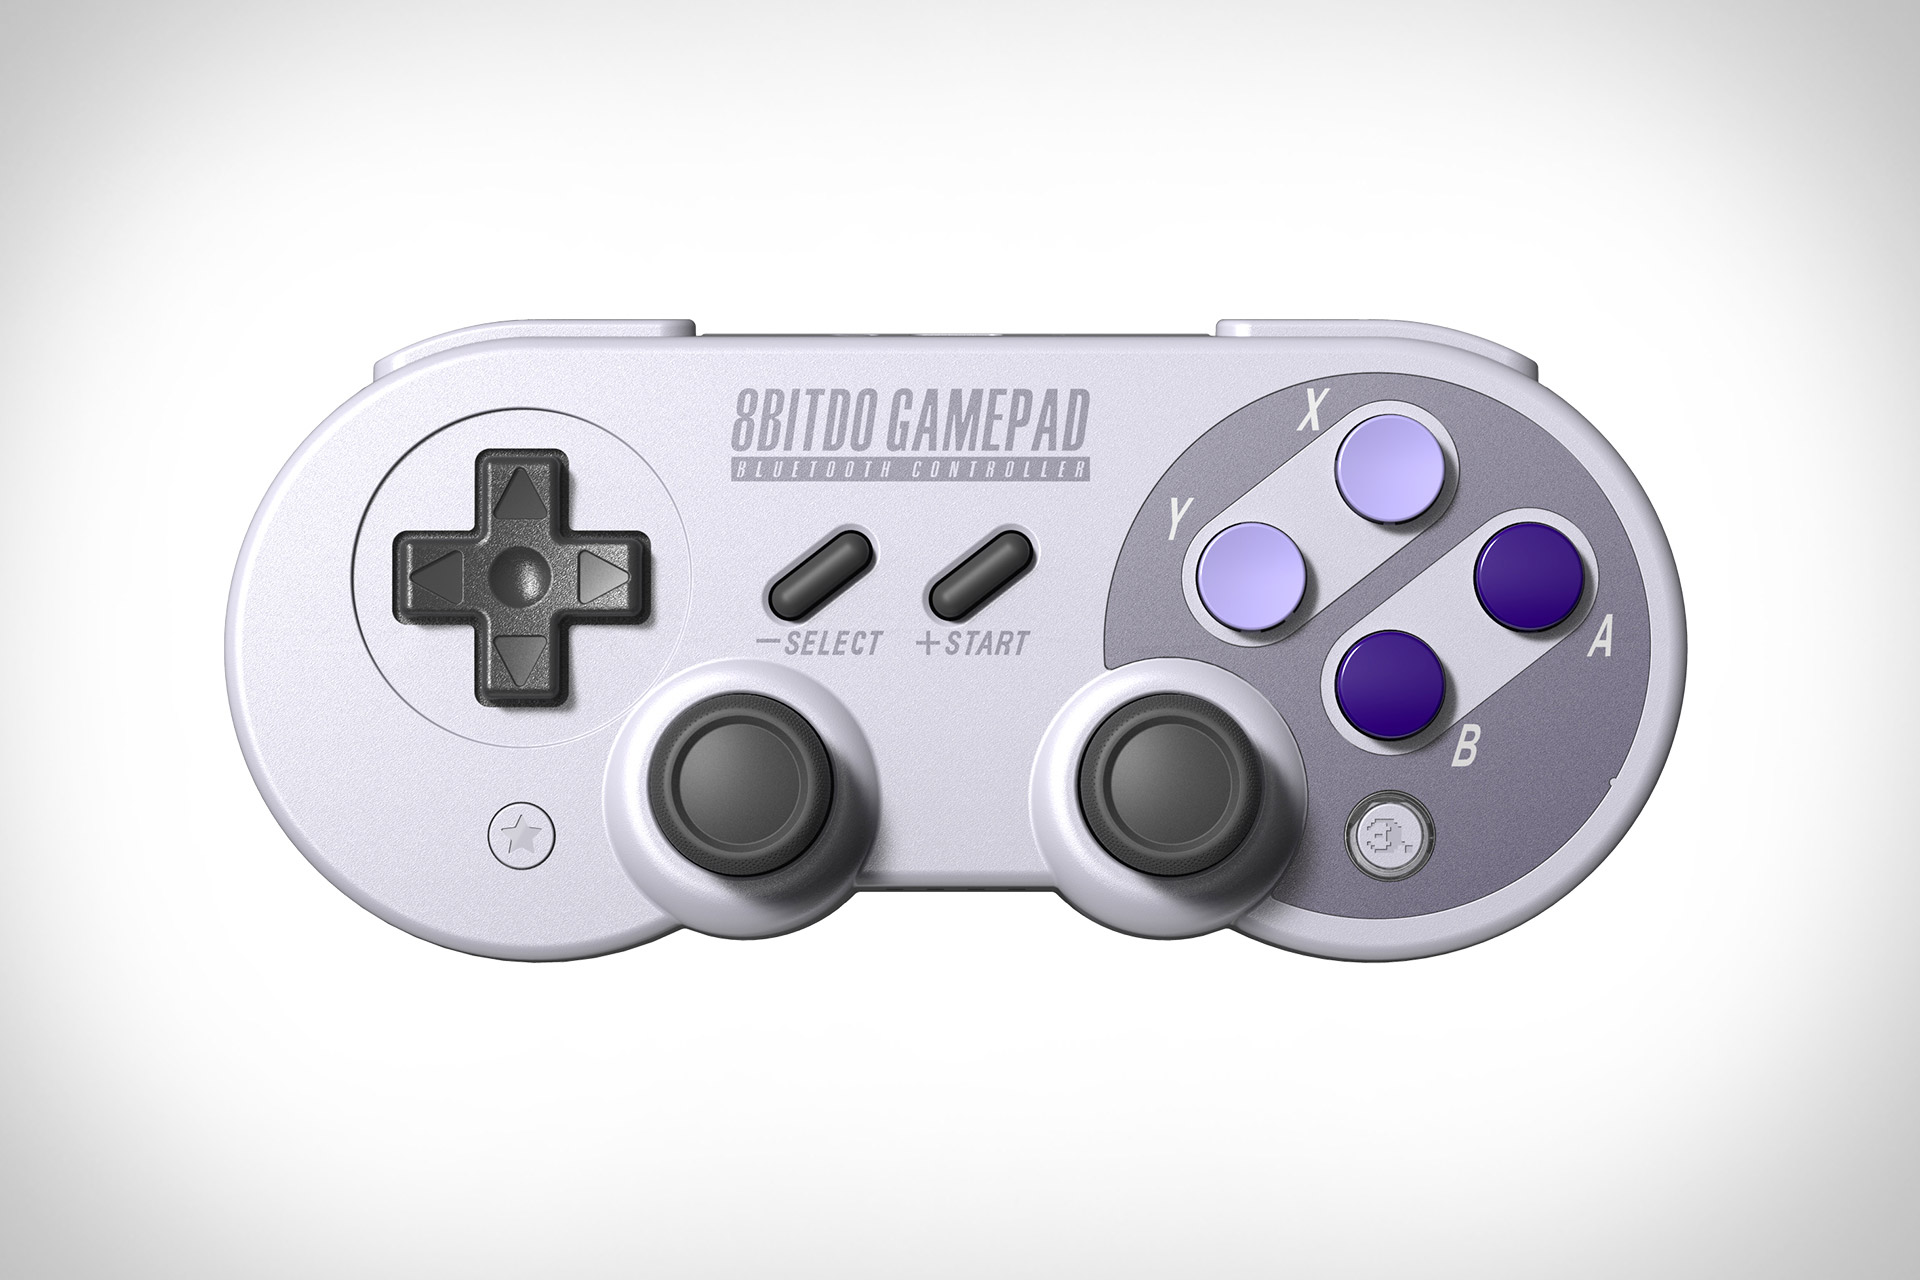 This new controller is up for pre-order on Amazon